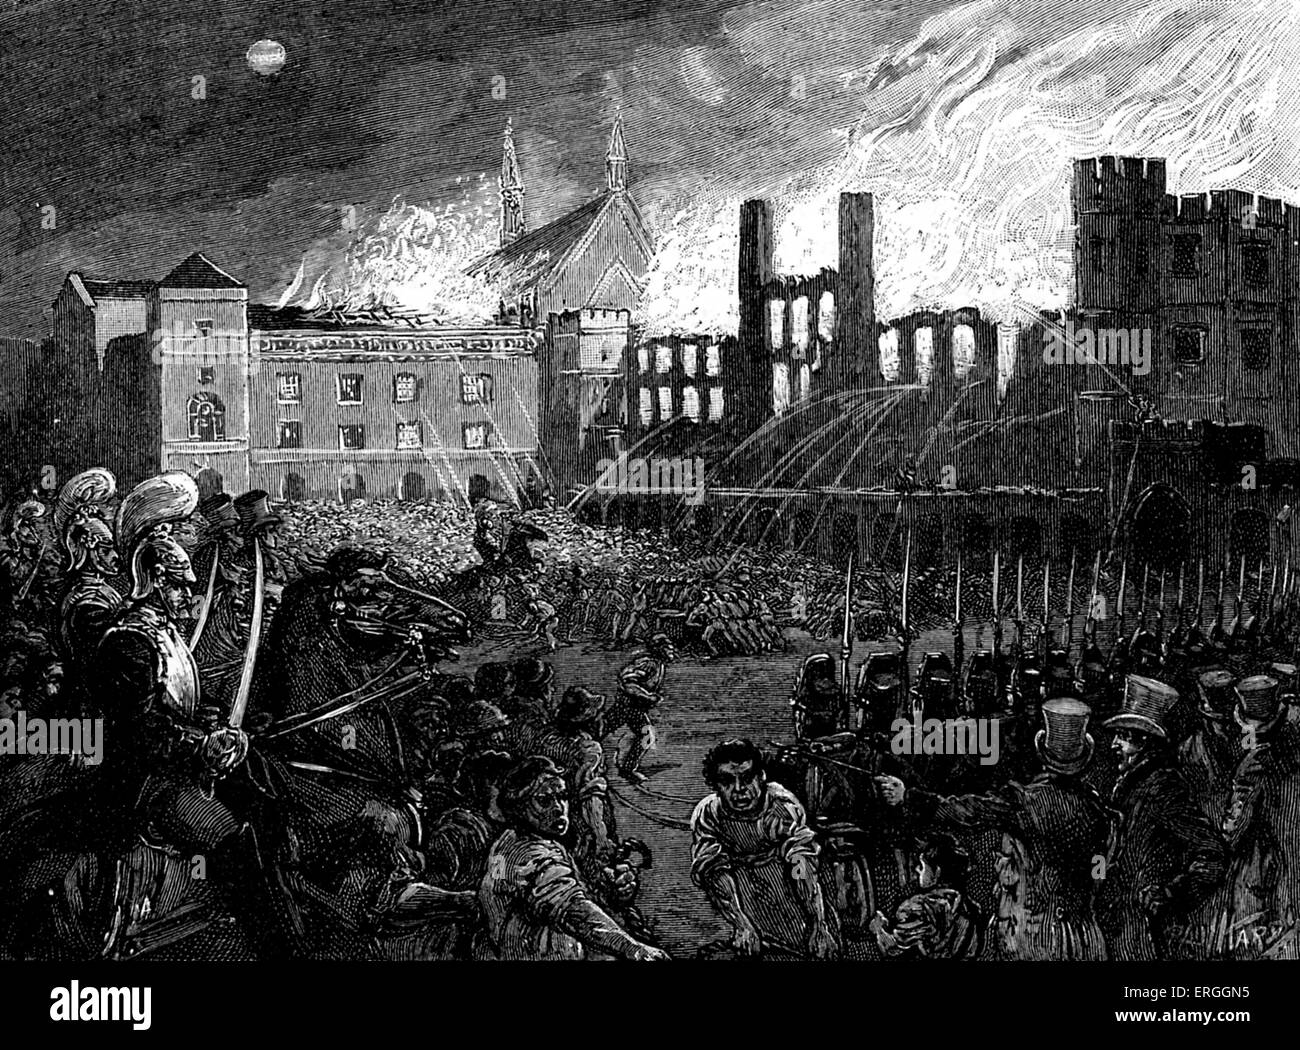 Burning of Parliament, 16 October 1834. Fire which destroyed the Palace of Westminster (Houses of Parliament). - Stock Image